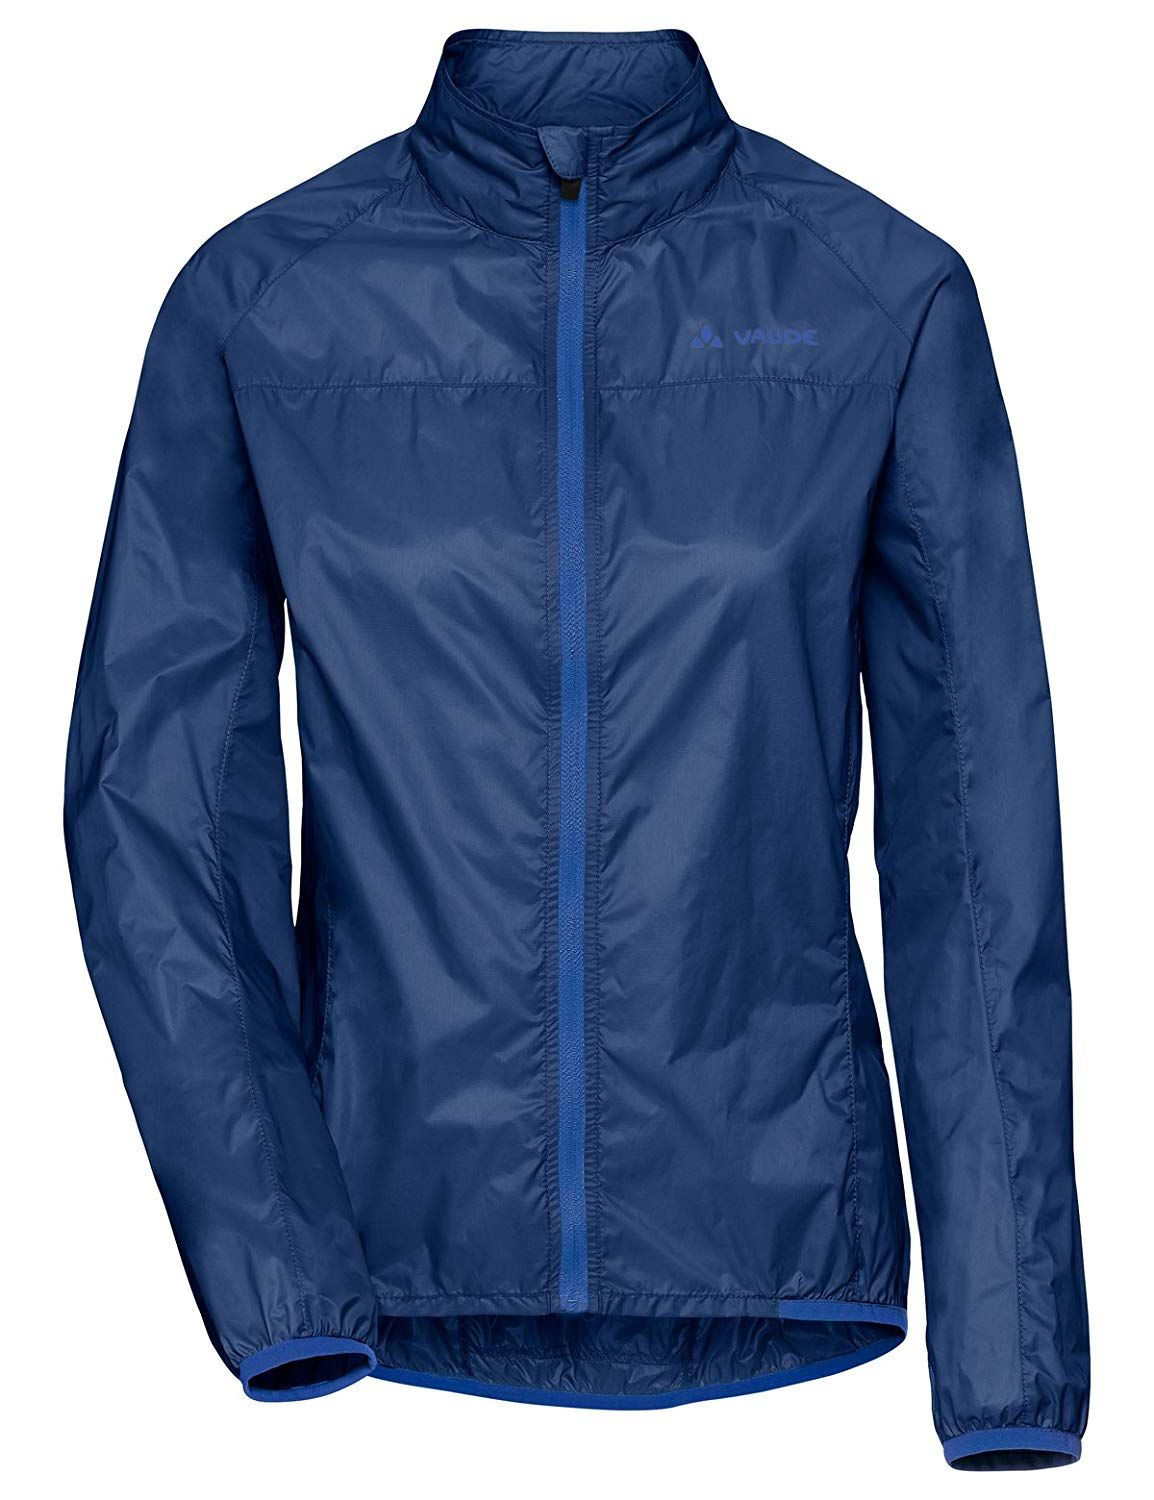 the latest 3a192 b974d VAUDE Womens Jacket Sailor Blue | Clothing between 50-100 ...